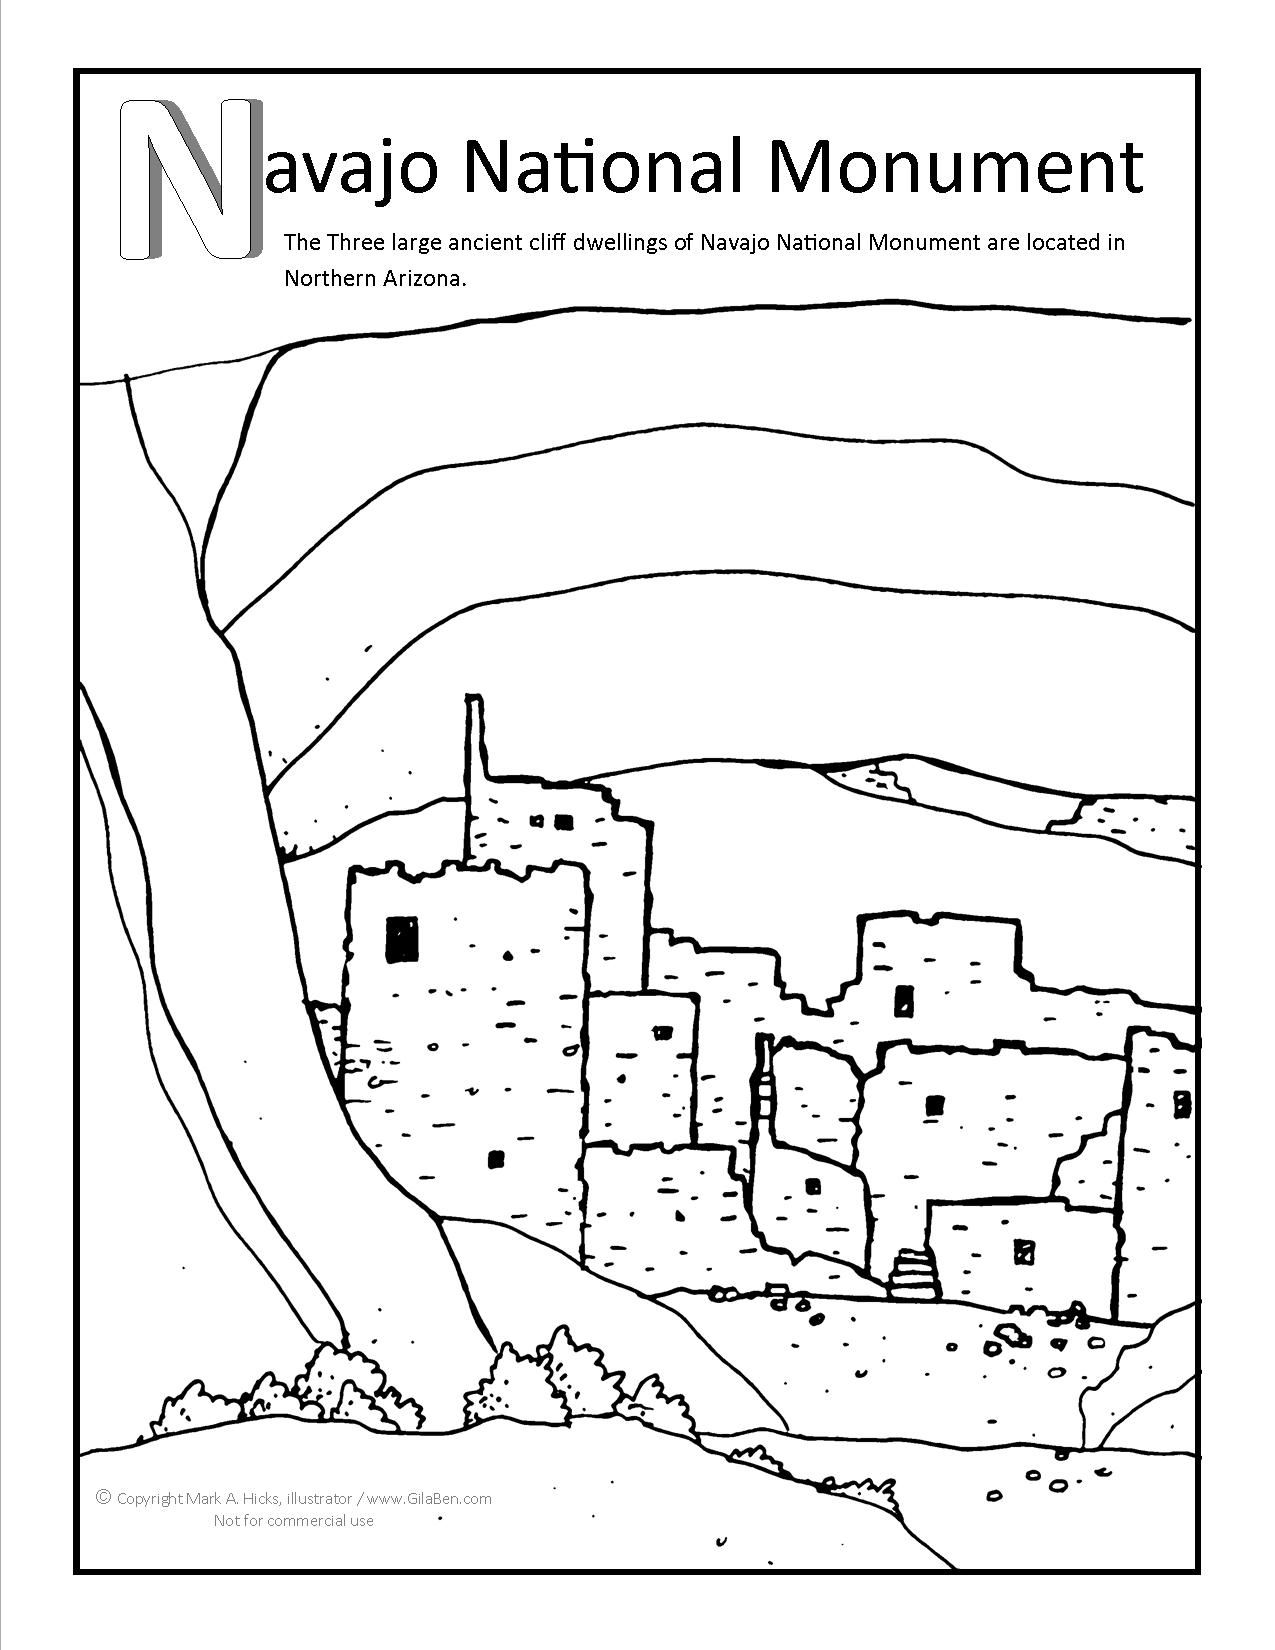 Navajo National Monument Coloring Page At Gilaben Com Navajo